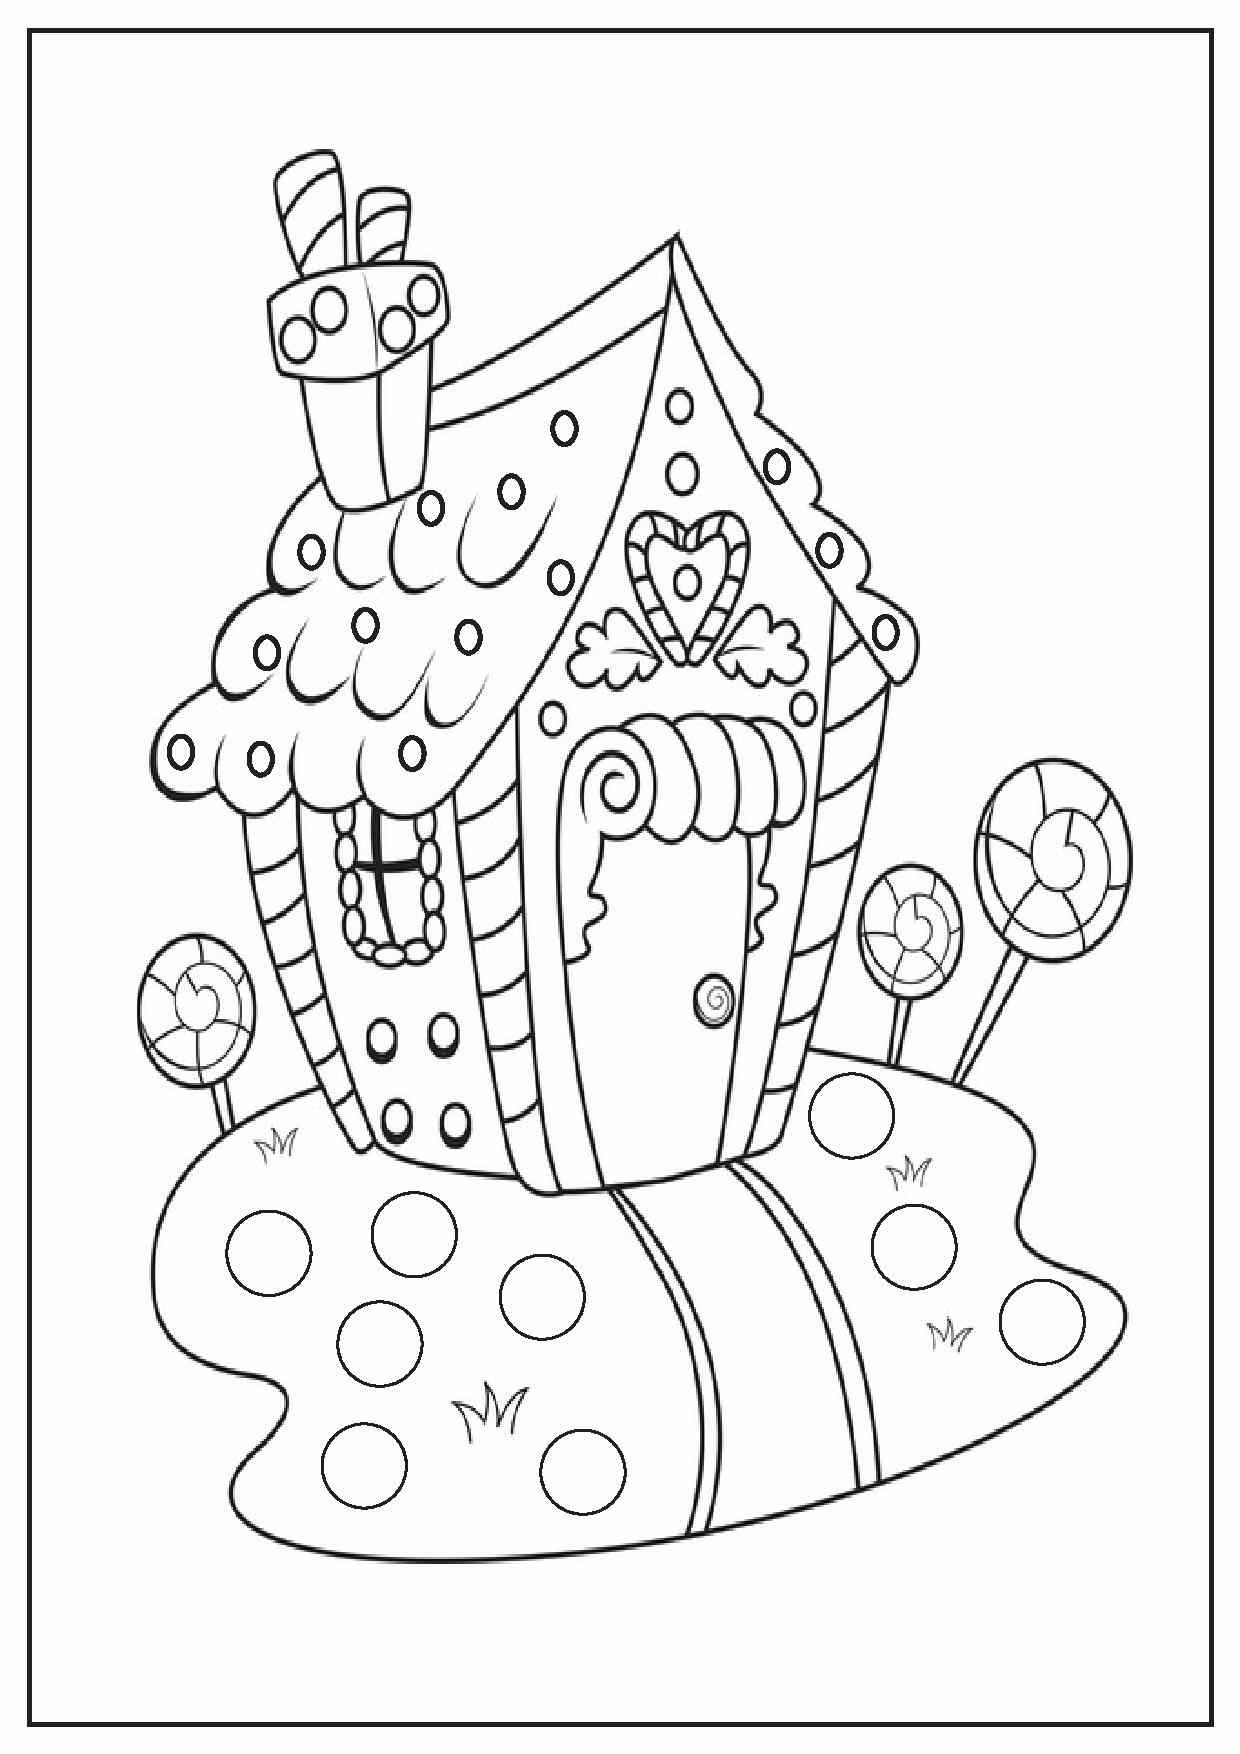 Christmas Coloring Printable Sheets With Pages